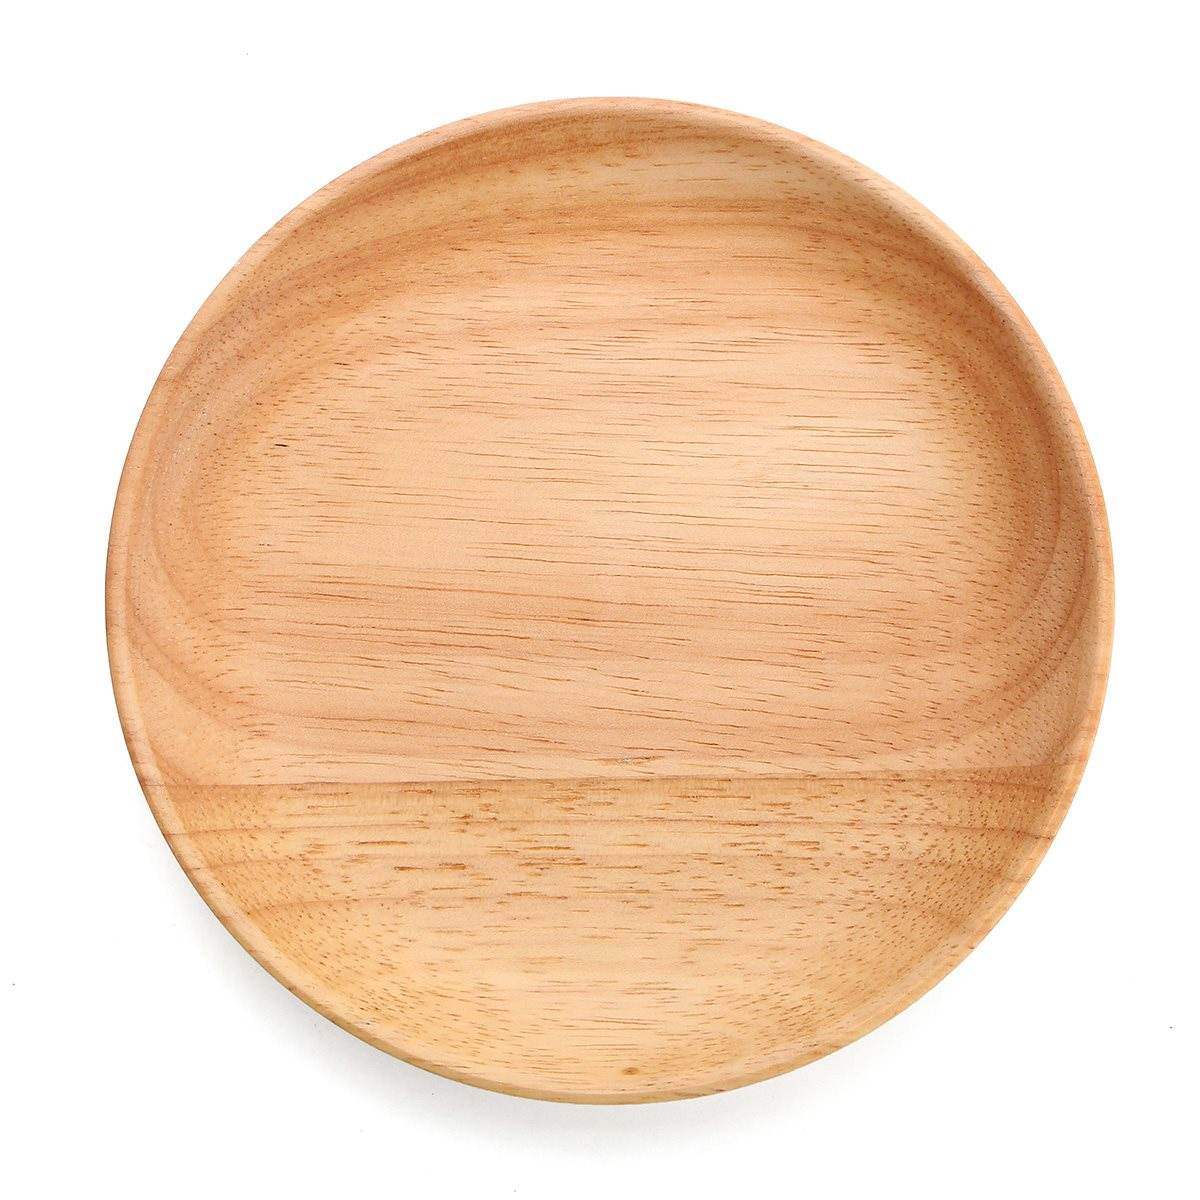 14cmX2cm Round Wooden Plate Dishes Breakfast Snack Serving Trays Salad Bowl Platter Home Kitchen Dinner Food Holder Utensils-in Dishes \u0026 Plates from Home ...  sc 1 st  AliExpress.com & 14cmX2cm Round Wooden Plate Dishes Breakfast Snack Serving Trays ...